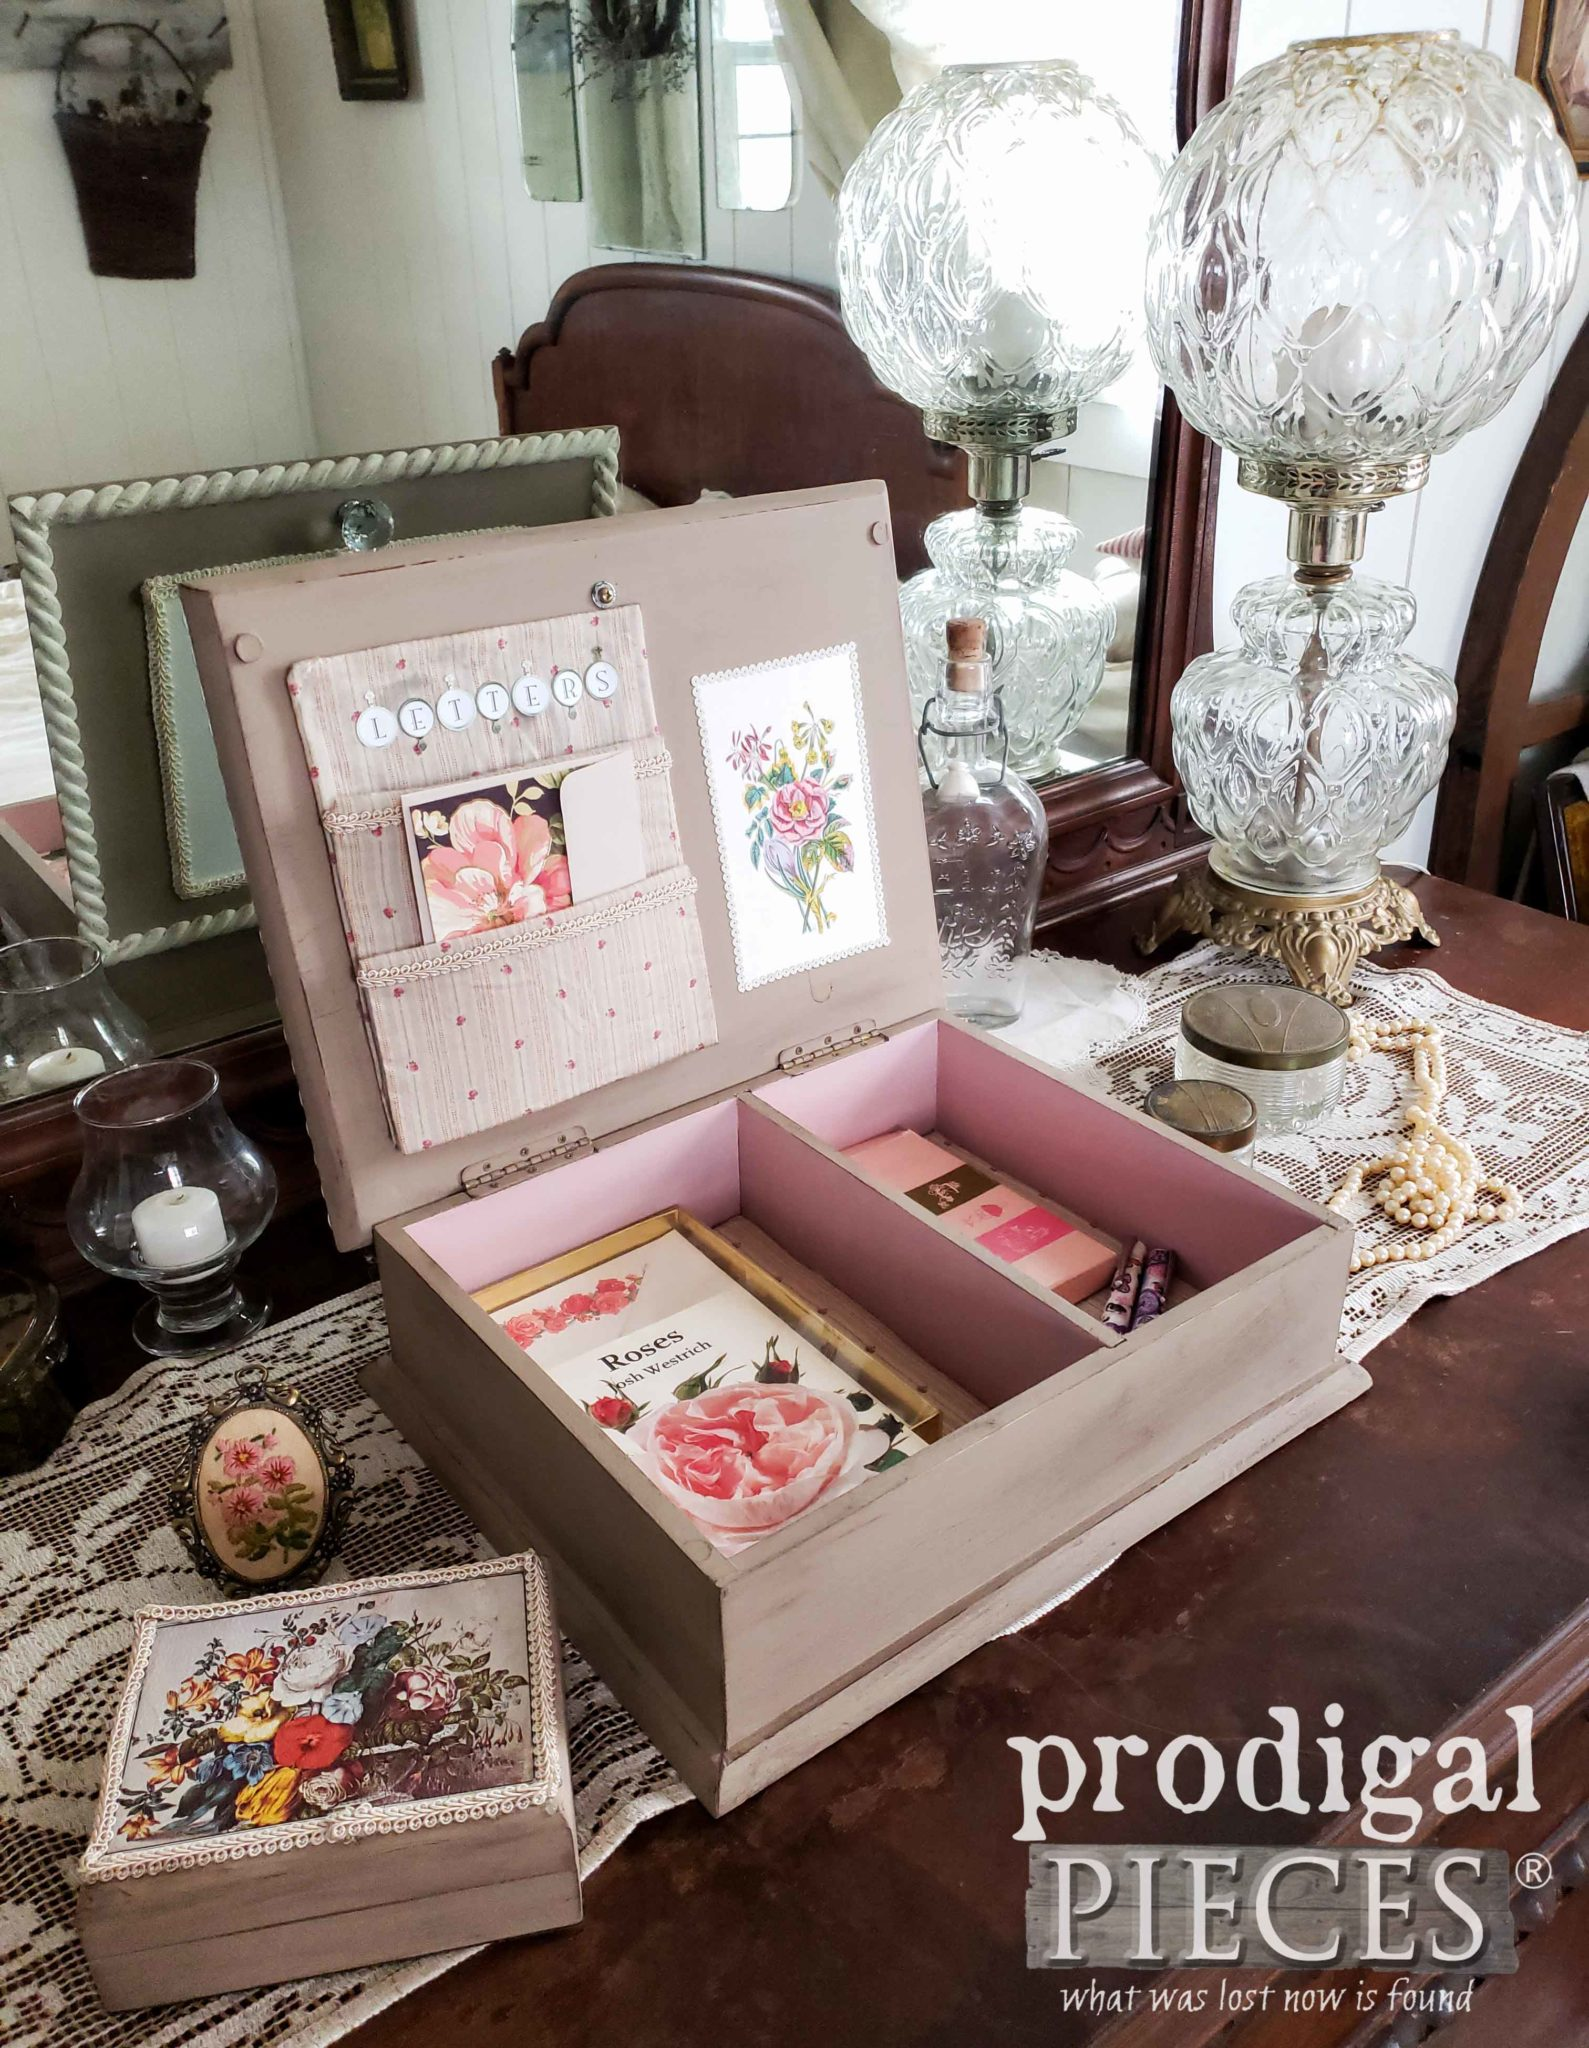 Vintage Style Dresser Box for Stationery, Jewelry, Keepsakes by Larissa of Prodigal Pieces | prodigalpieces.com #prodigalpieces #diy #vintage #home #handmade #homedecor